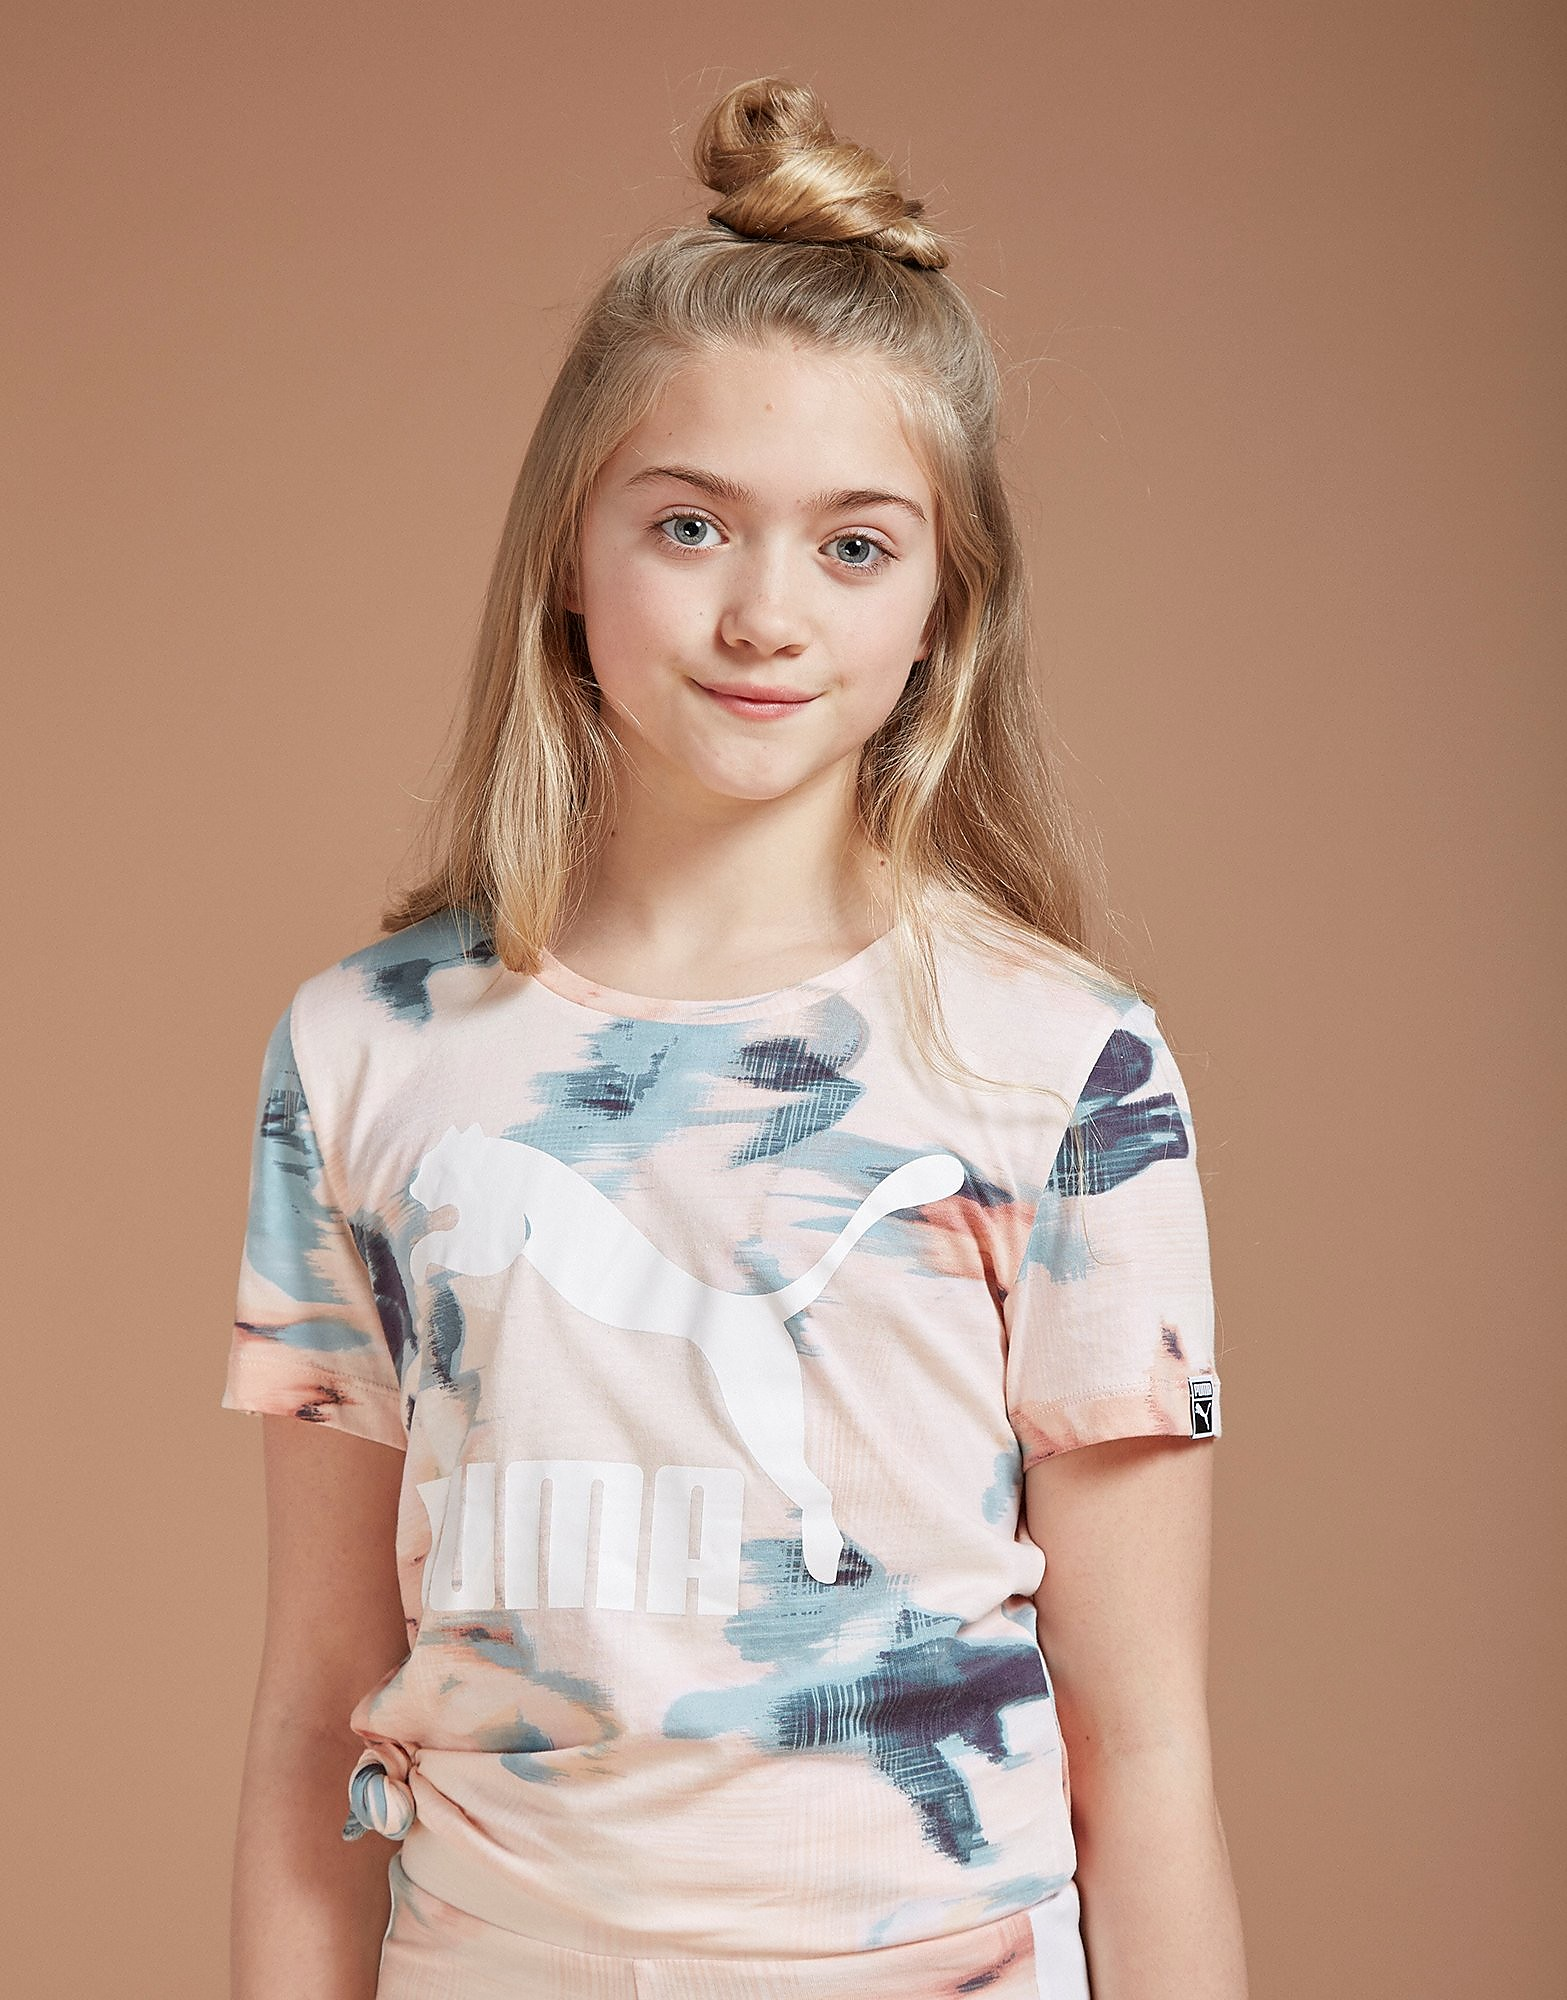 PUMA T-shirt Girls' Classic All Over Print Junior